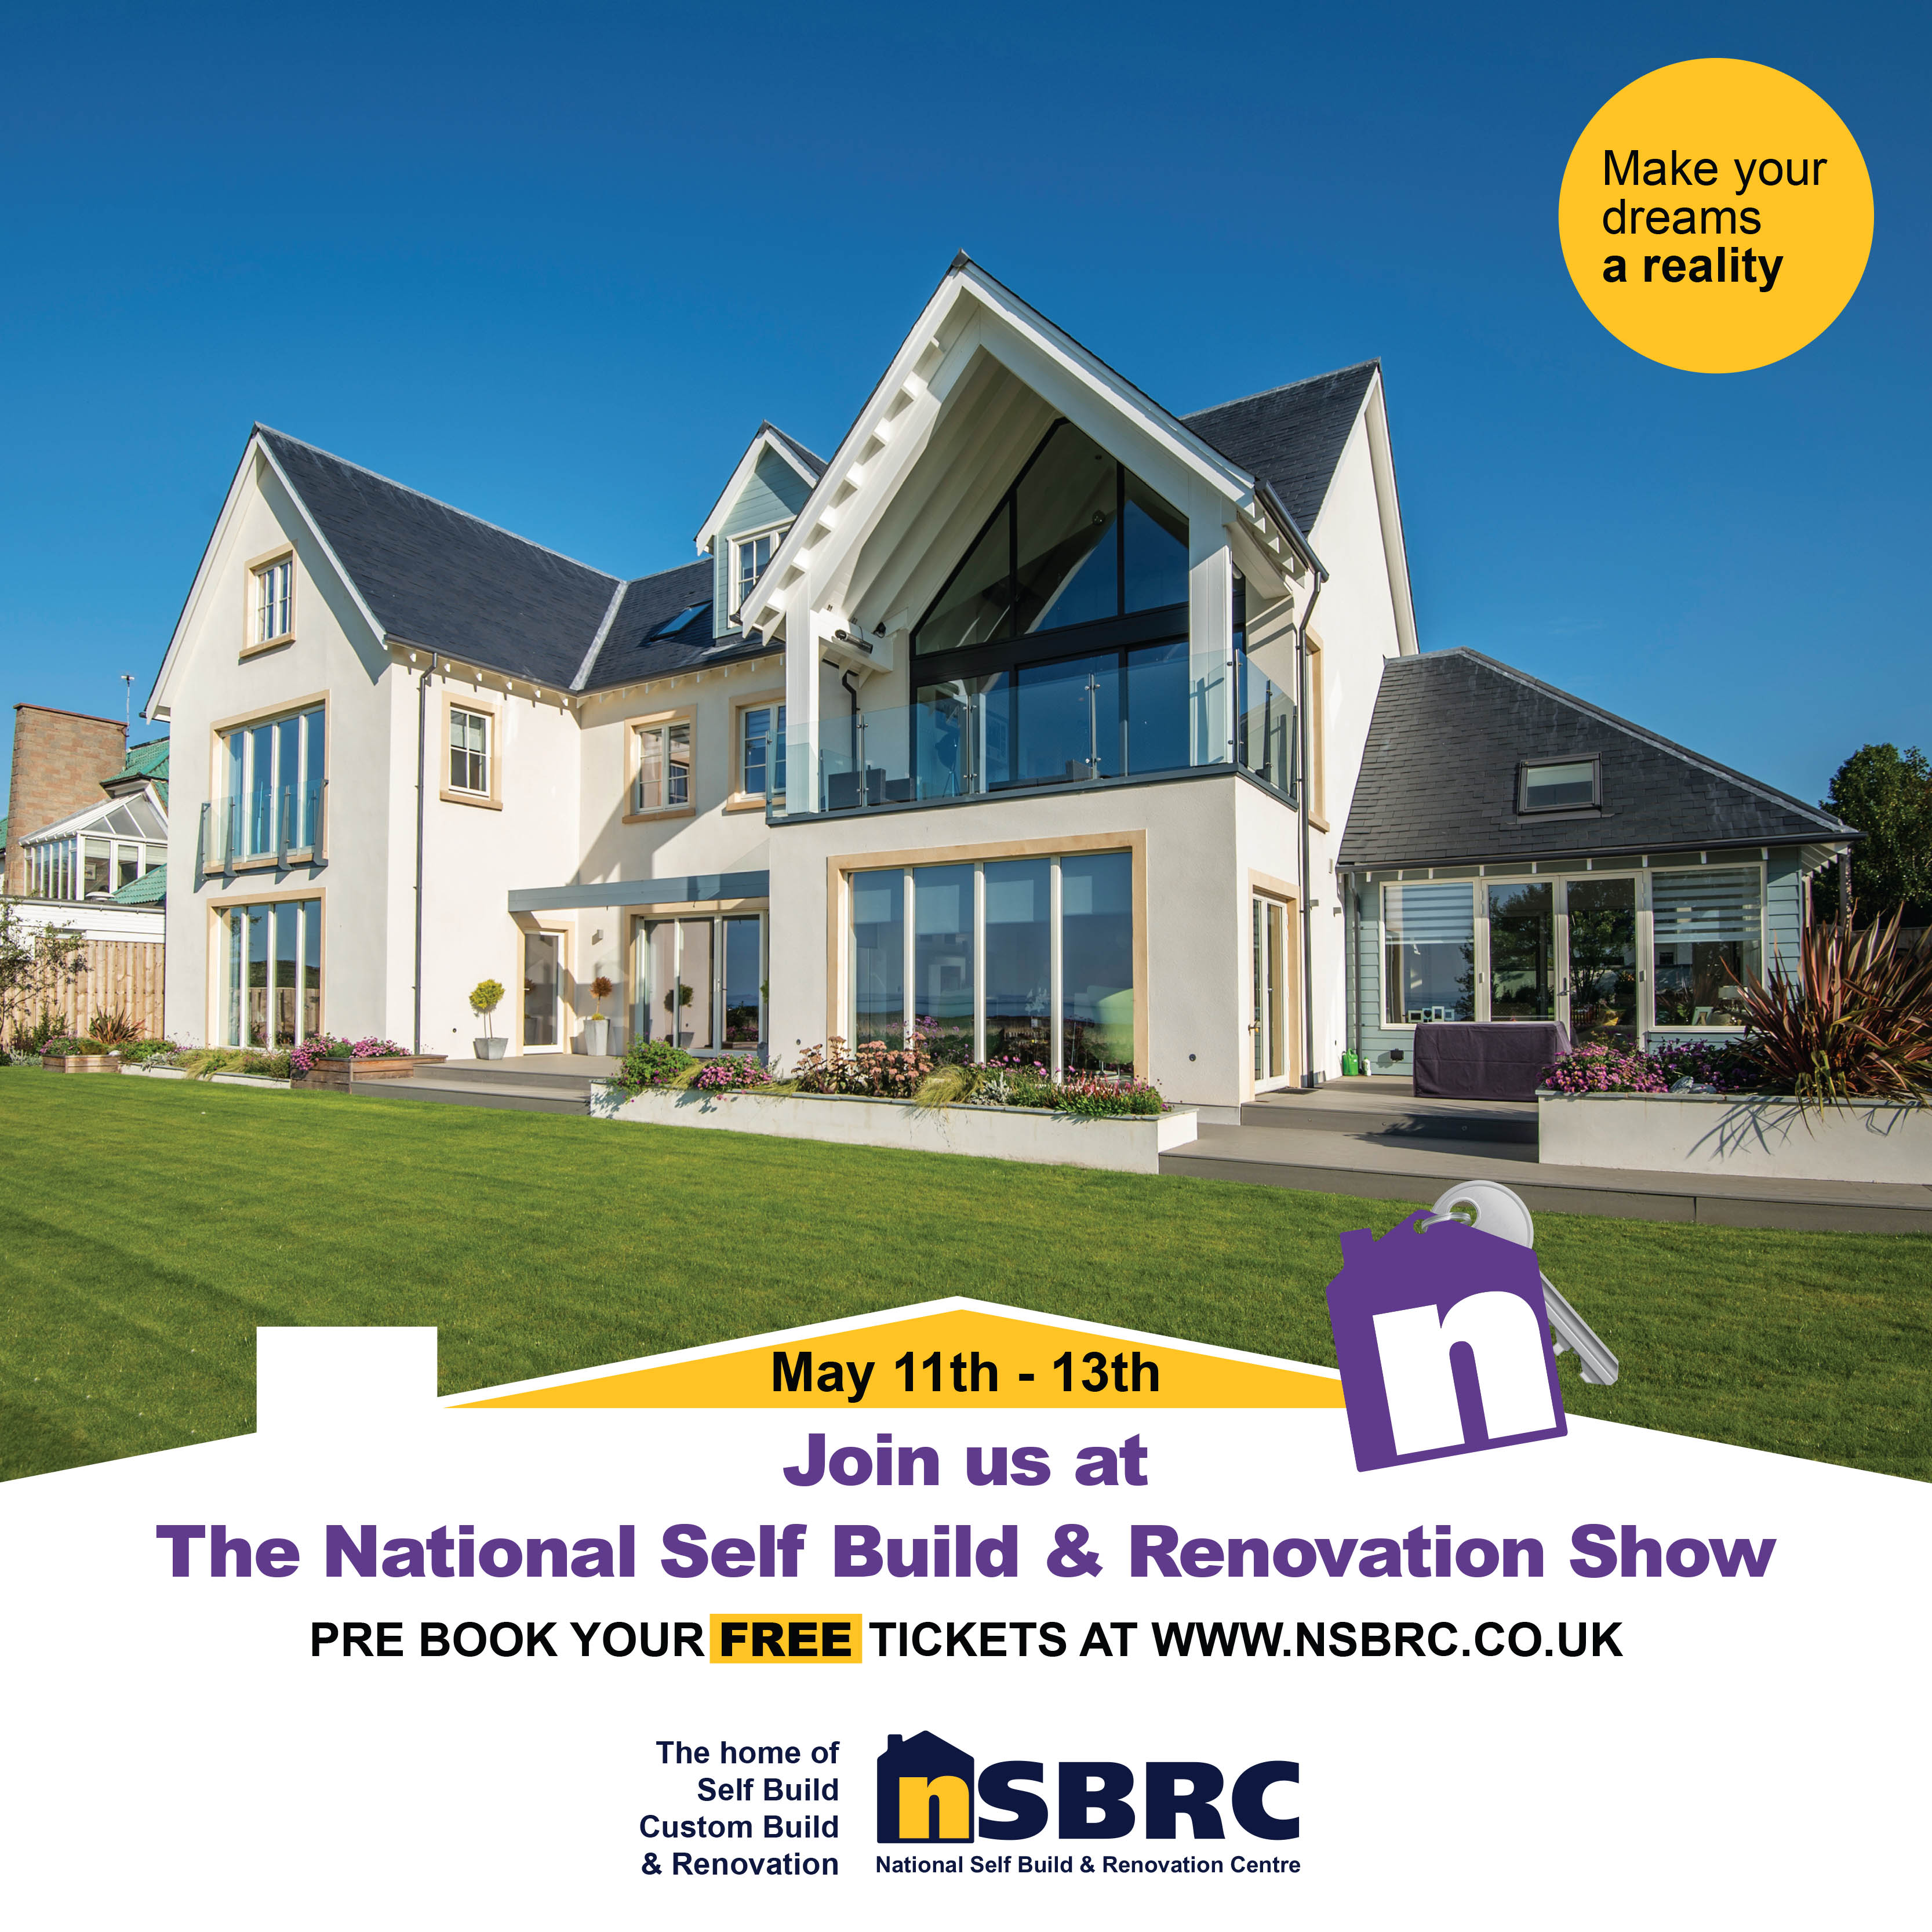 NSBRC_NSBRS_Sharing_Graphic_MAY_18_Show_1200x1200px